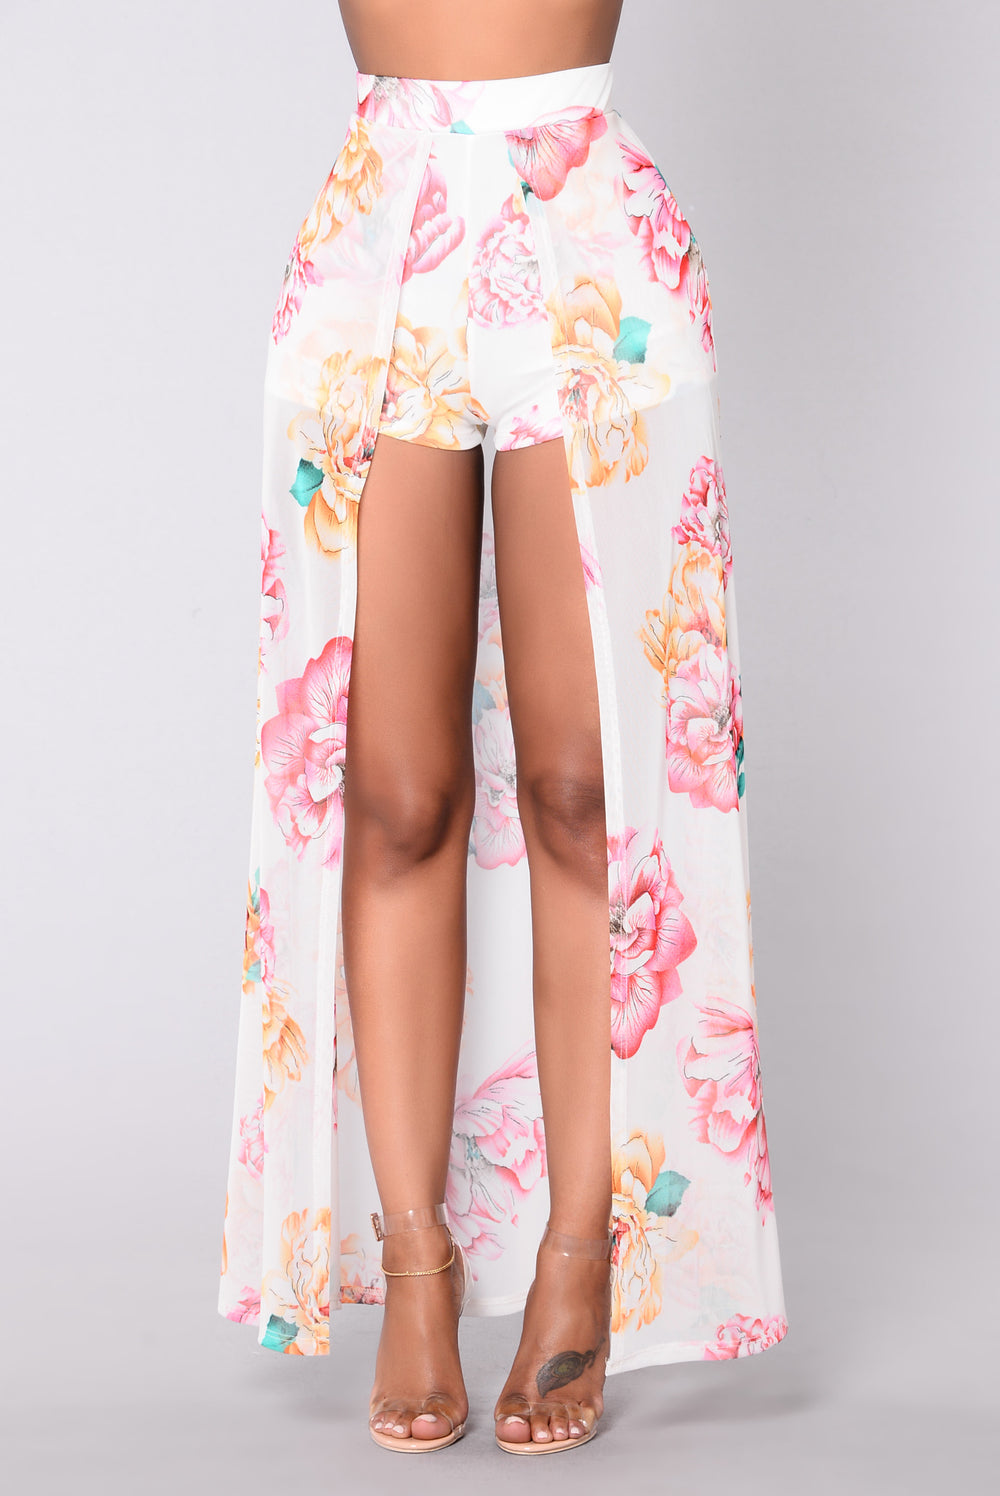 You Can Sit With Us Shorts - Ivory/Floral